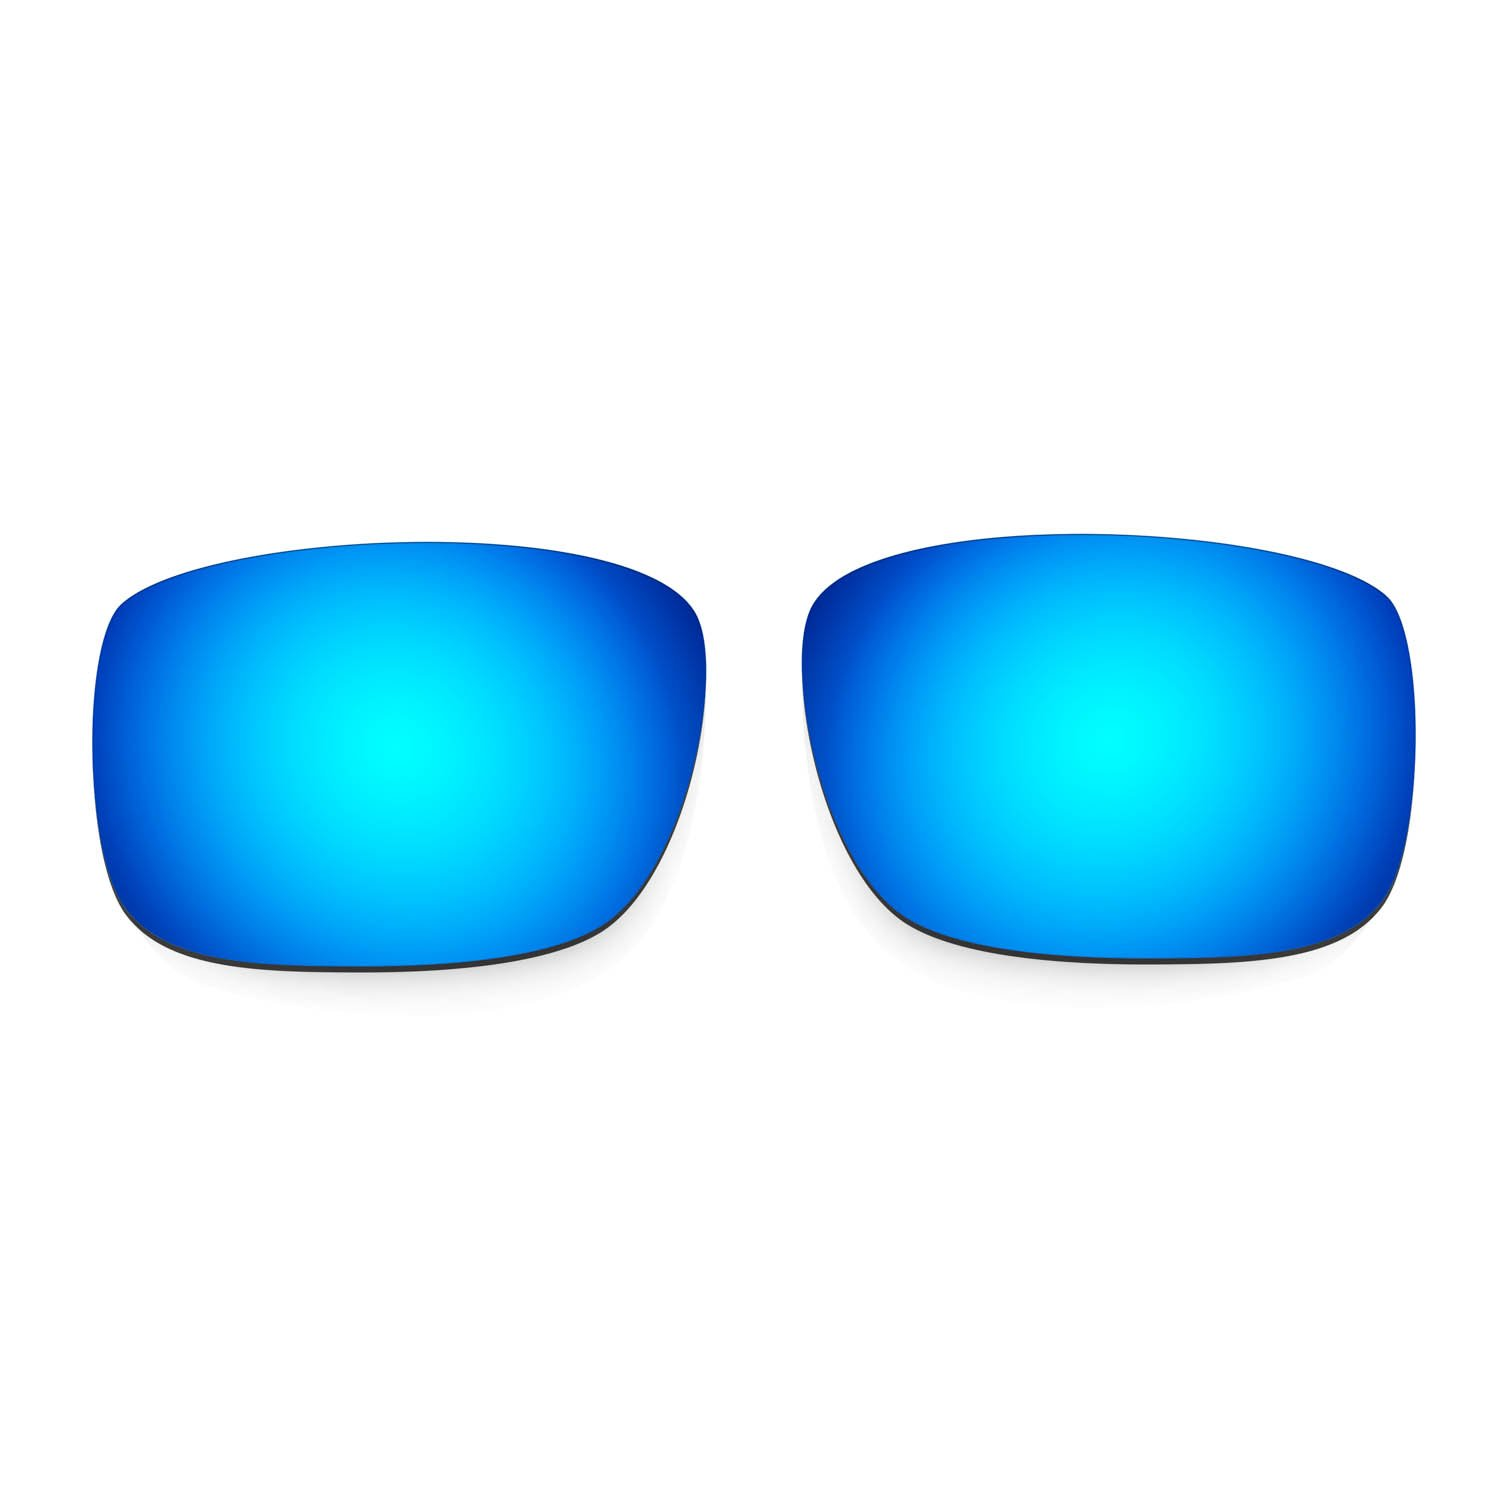 HKUCO Mens Replacement Lenses For Oakley Drop Point Sunglasses Blue Polarized PIDoig3X